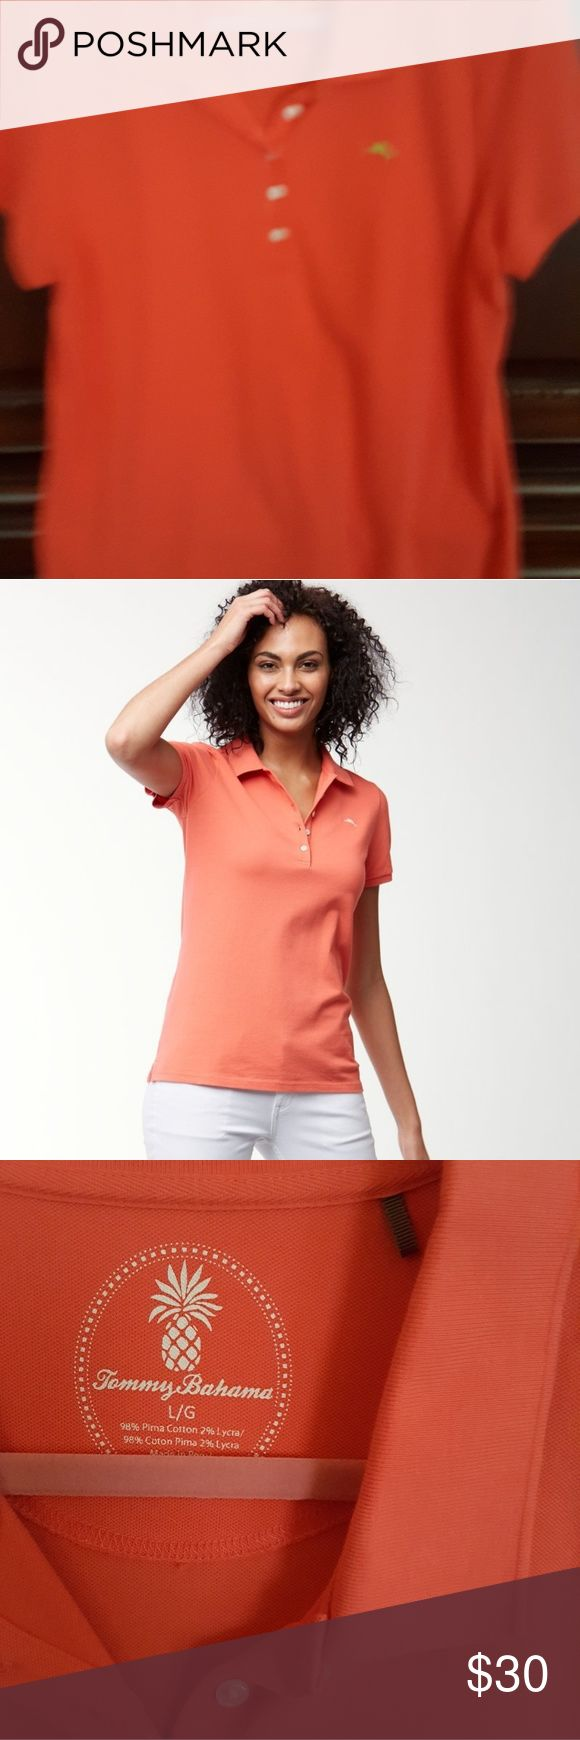 CLEARANCE ITEMTommy Bahama ladies polo ☄FINAL PRICE DROP ☄  (was $20.00 on sale listing and $68 when purchased new retail from Tommy Bahama.)  Size Large, EUC-worn 2x only Tommy Bahama Tops